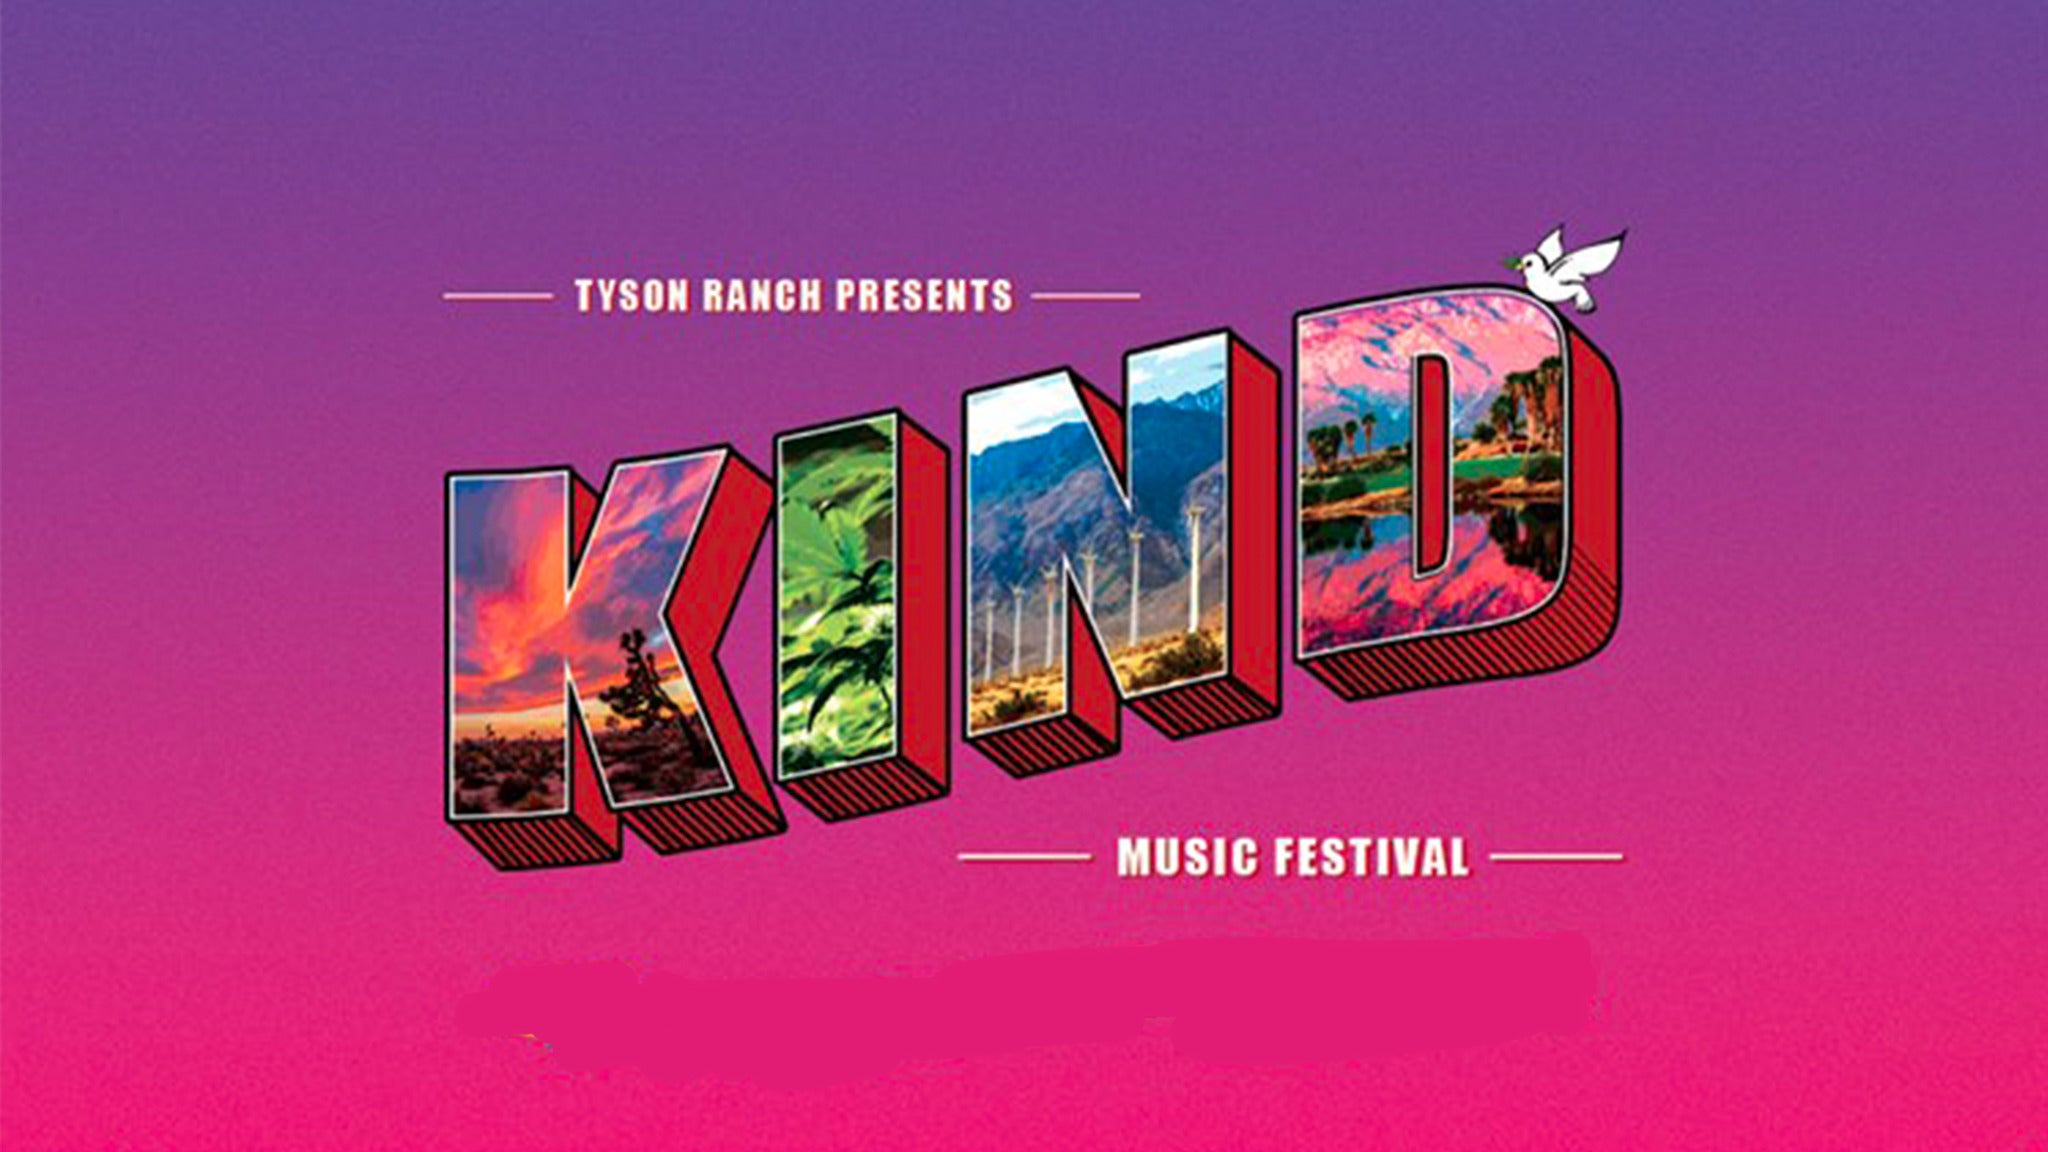 Kind Music Festival at Tyson Ranch